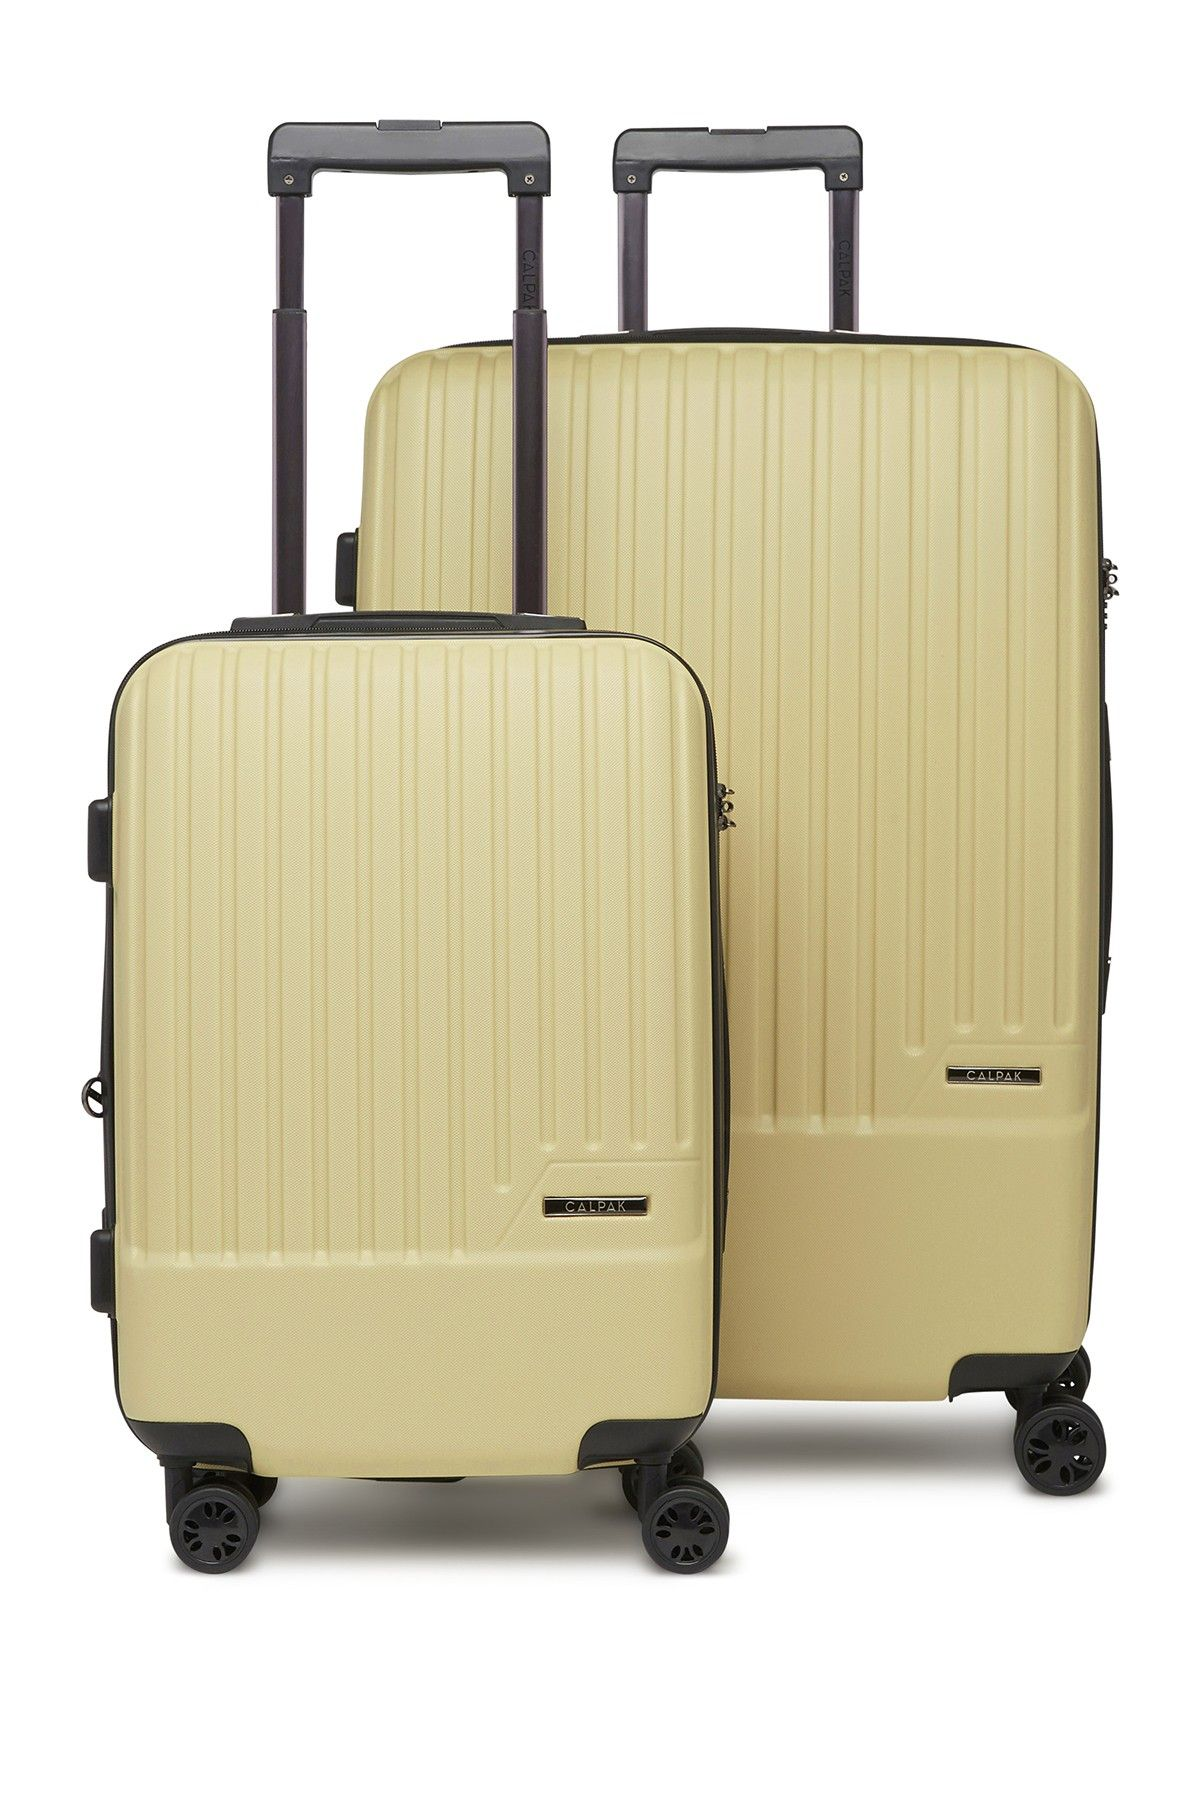 2199033b4 CALPAK LUGGAGE - Davis 2-Piece Spinner Luggage Set is now 27-50% off. Free  Shipping on orders over $100.